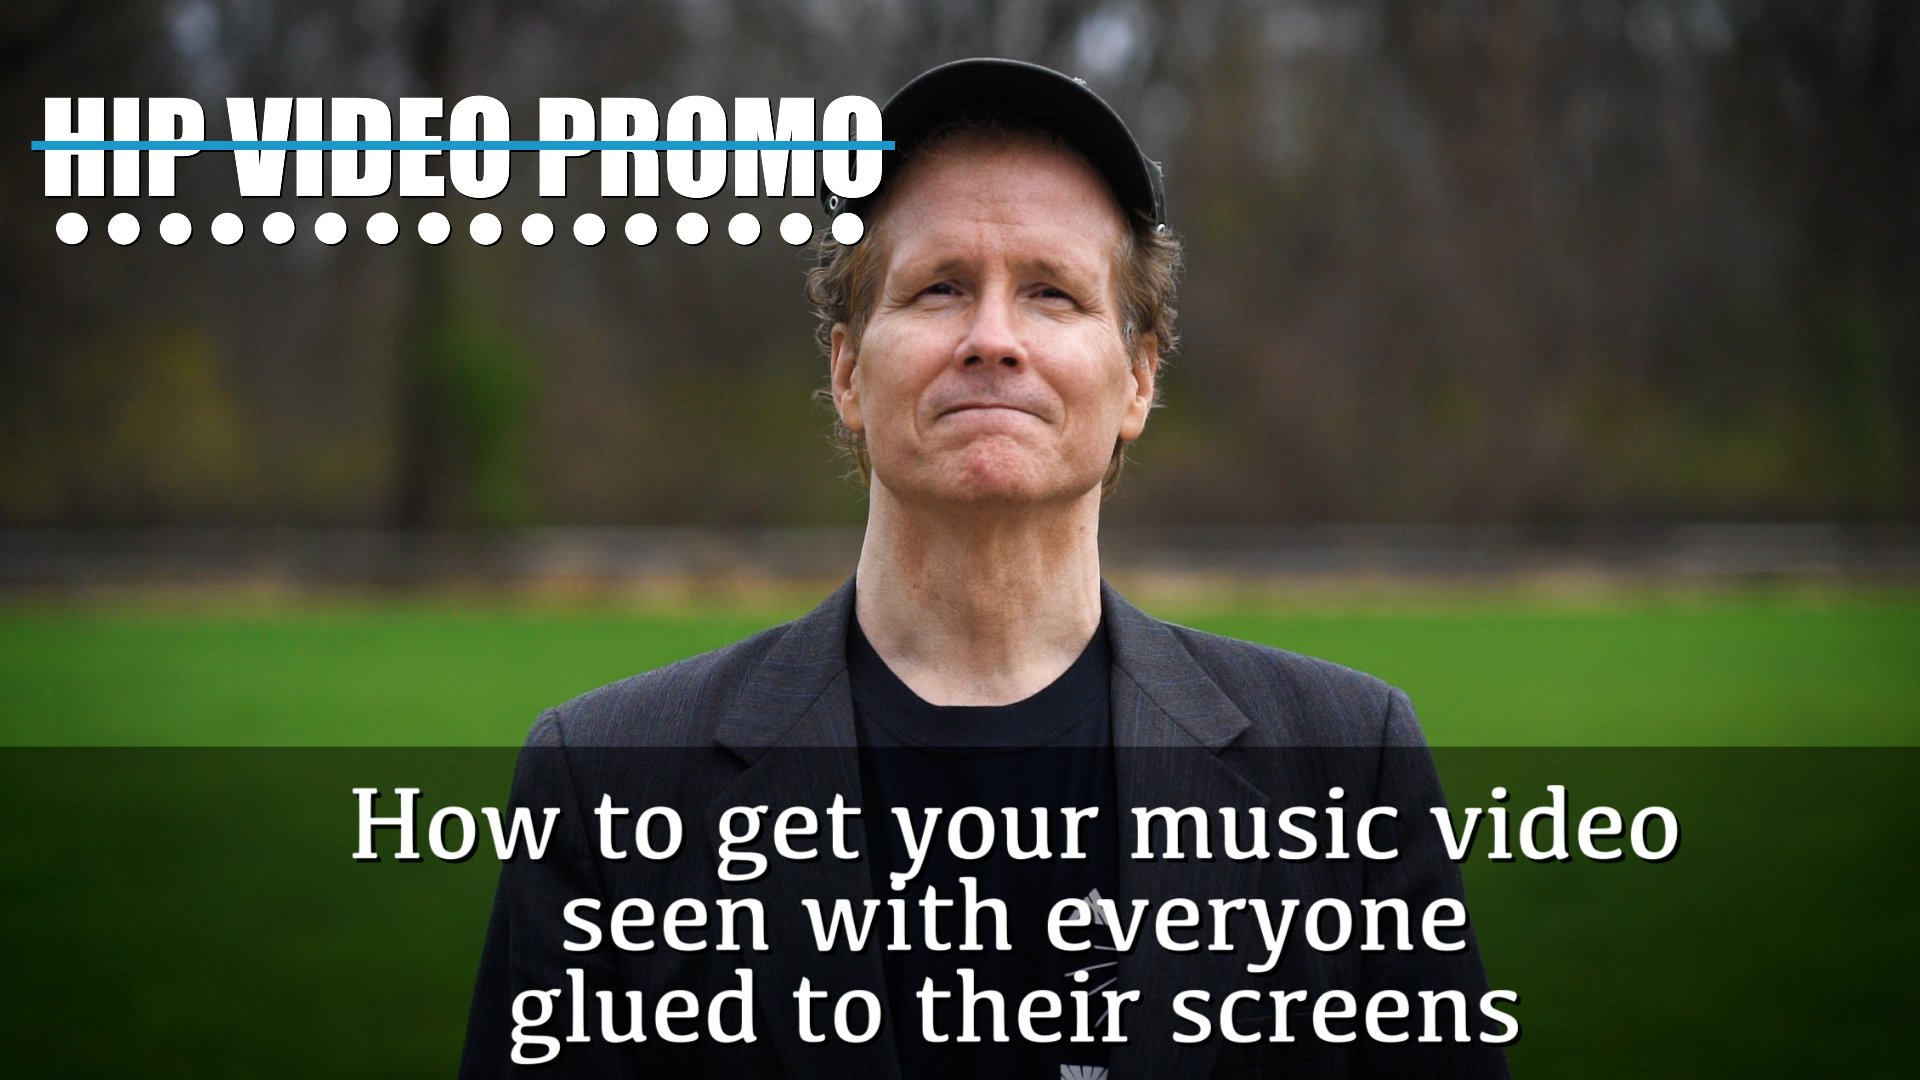 How to get your music video seen